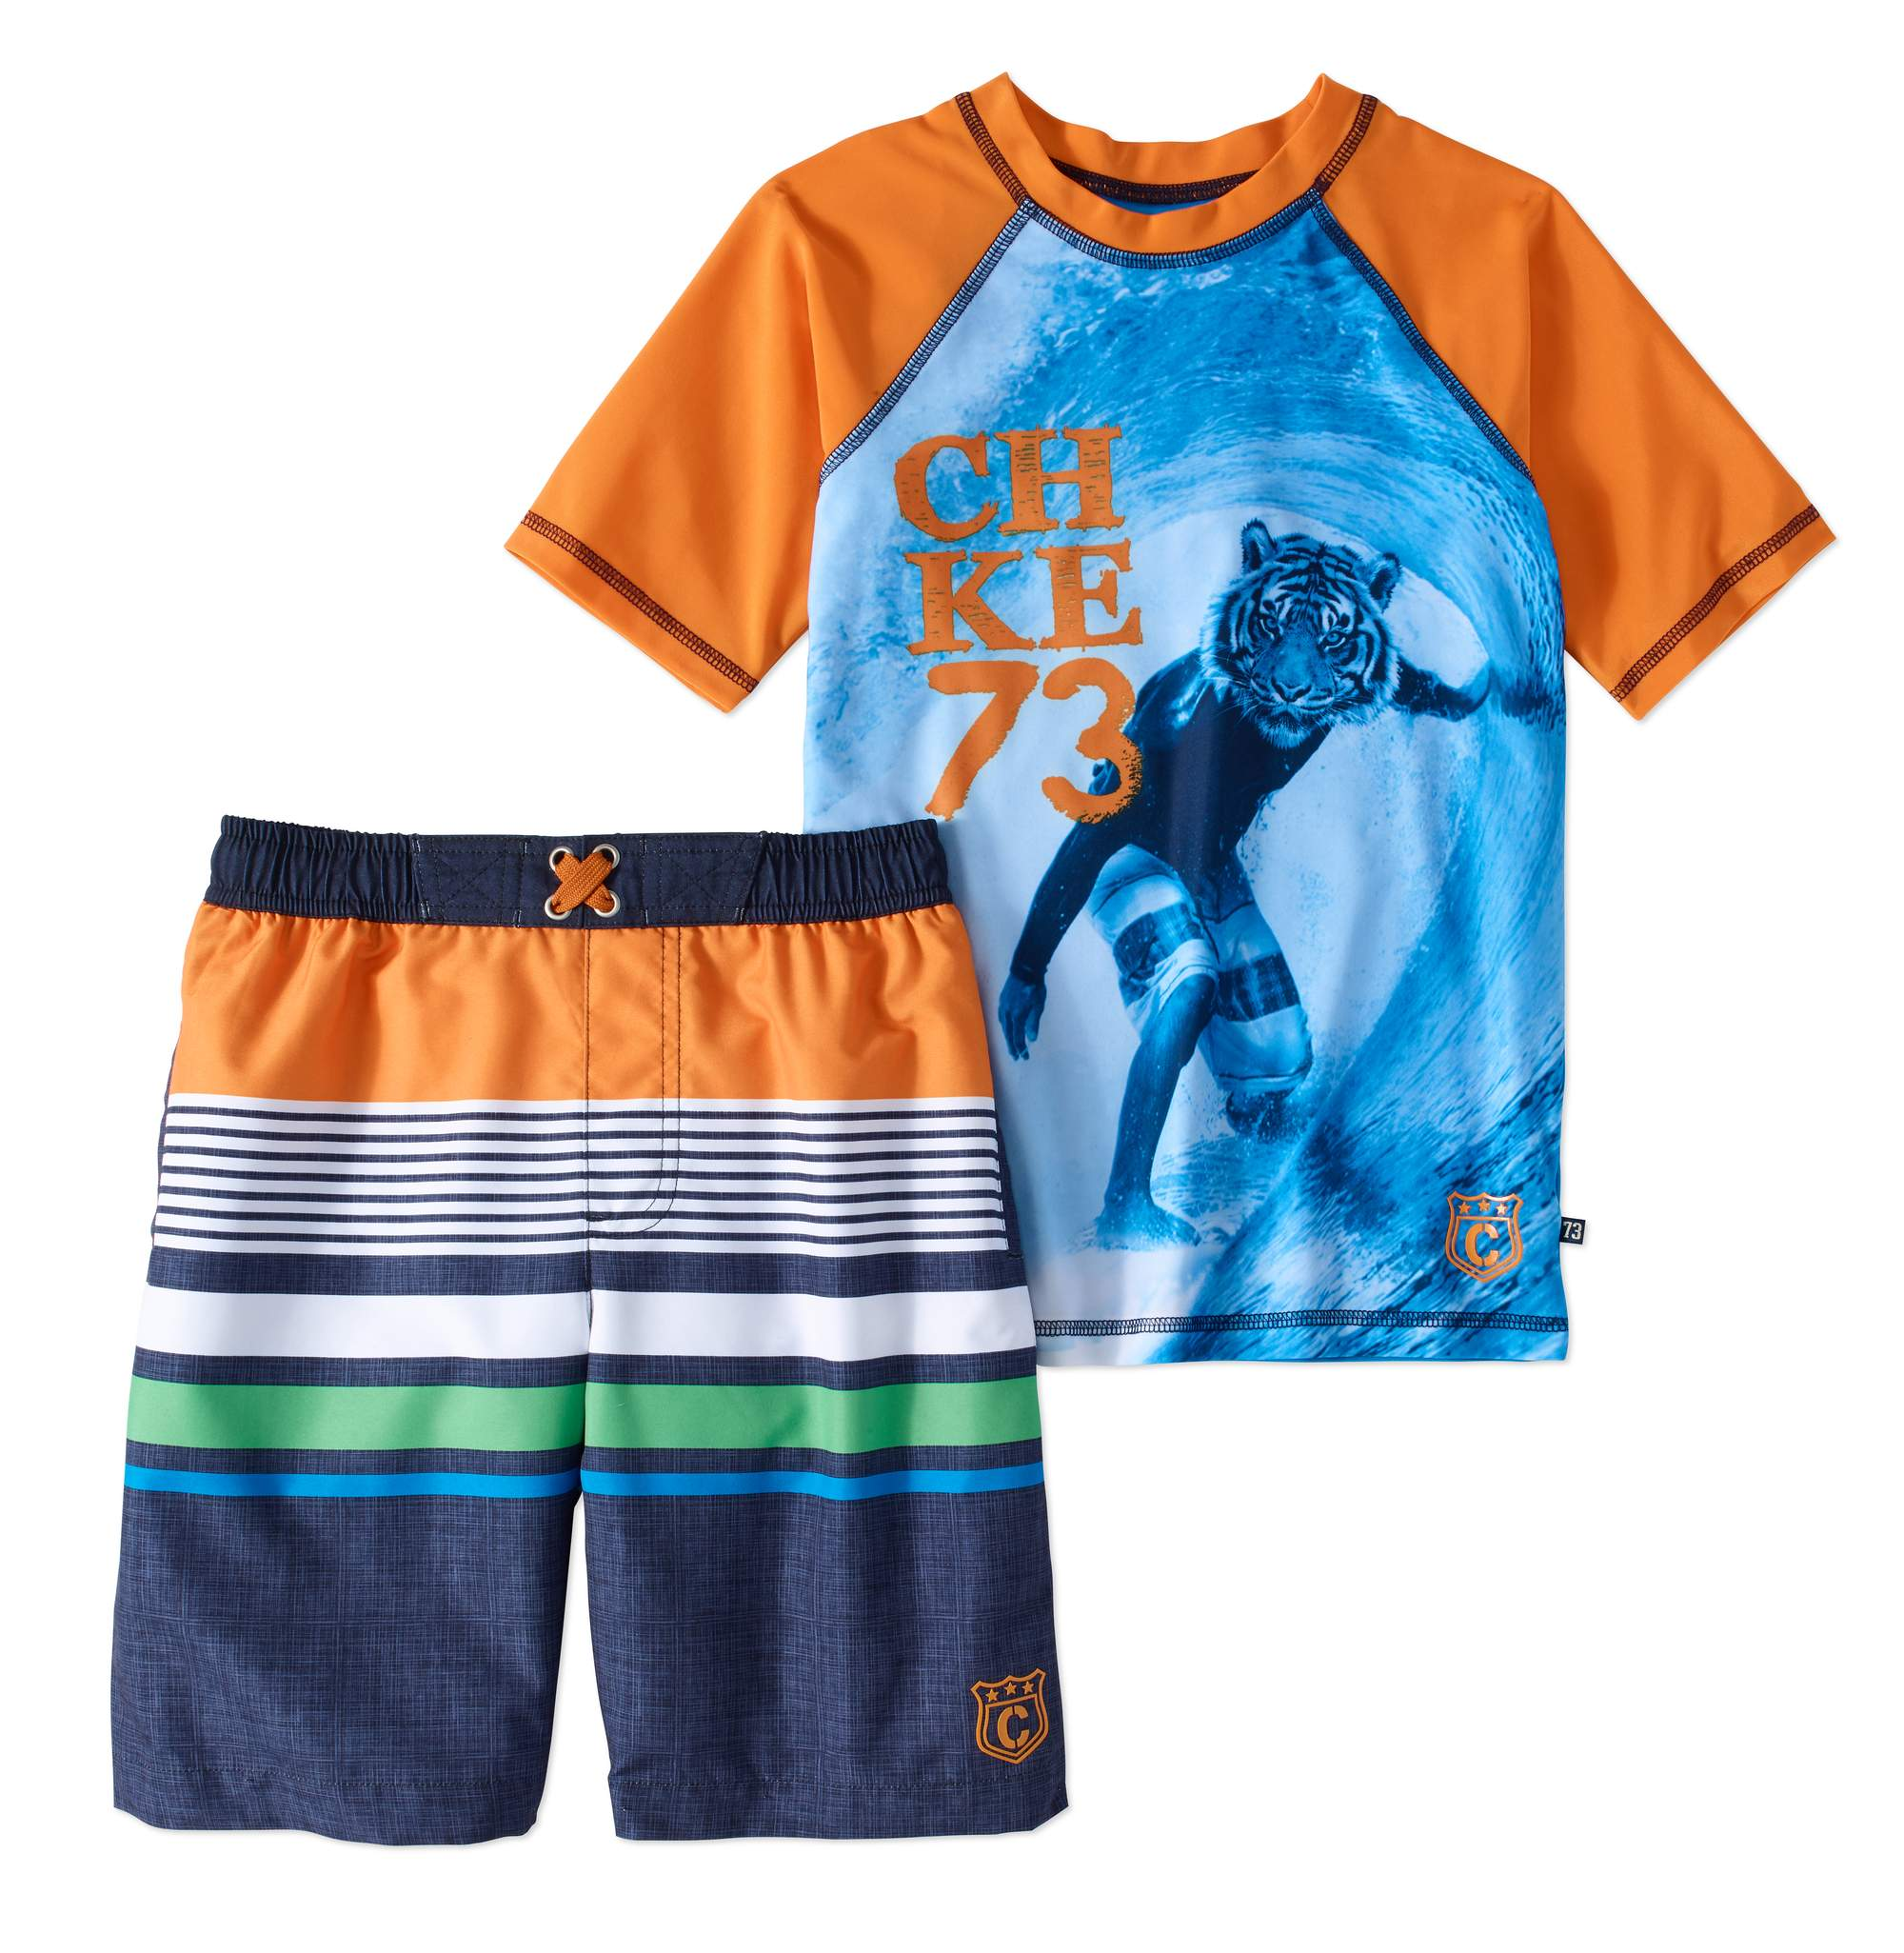 Boys' Tiger Rashguard And Swim Trunk 2 Piece Set